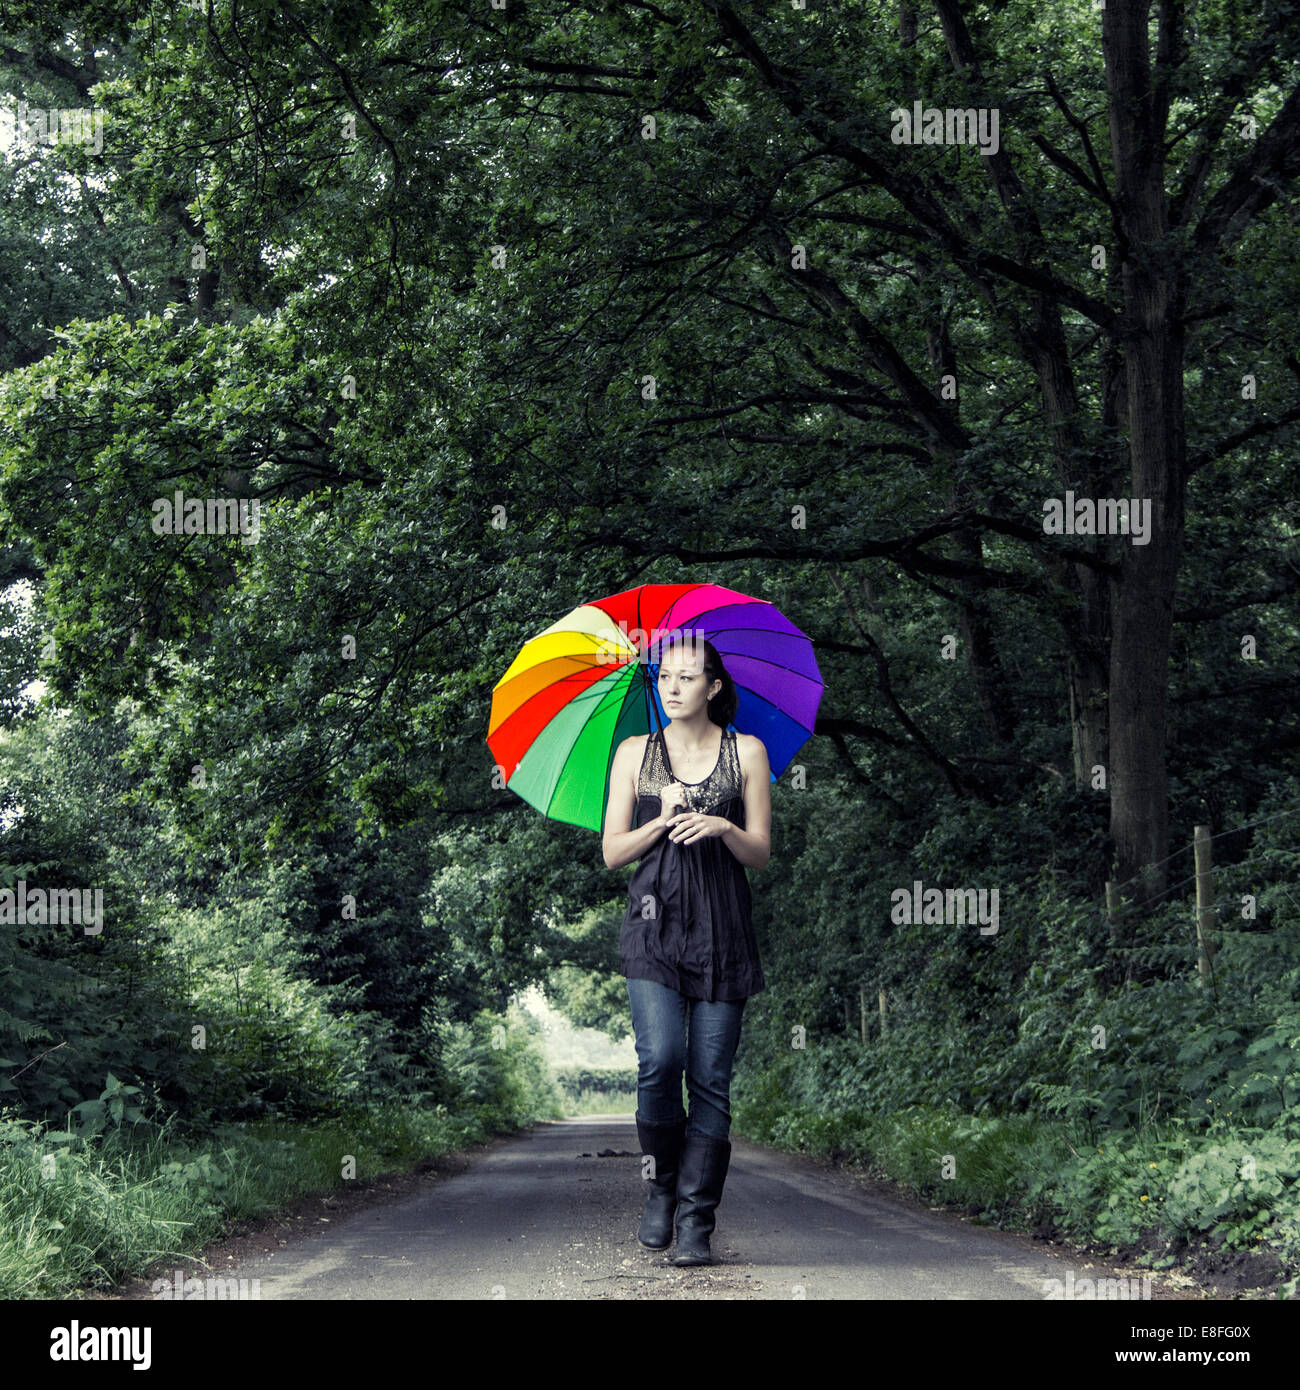 Woman walking down street with multi-colored umbrella Stock Photo